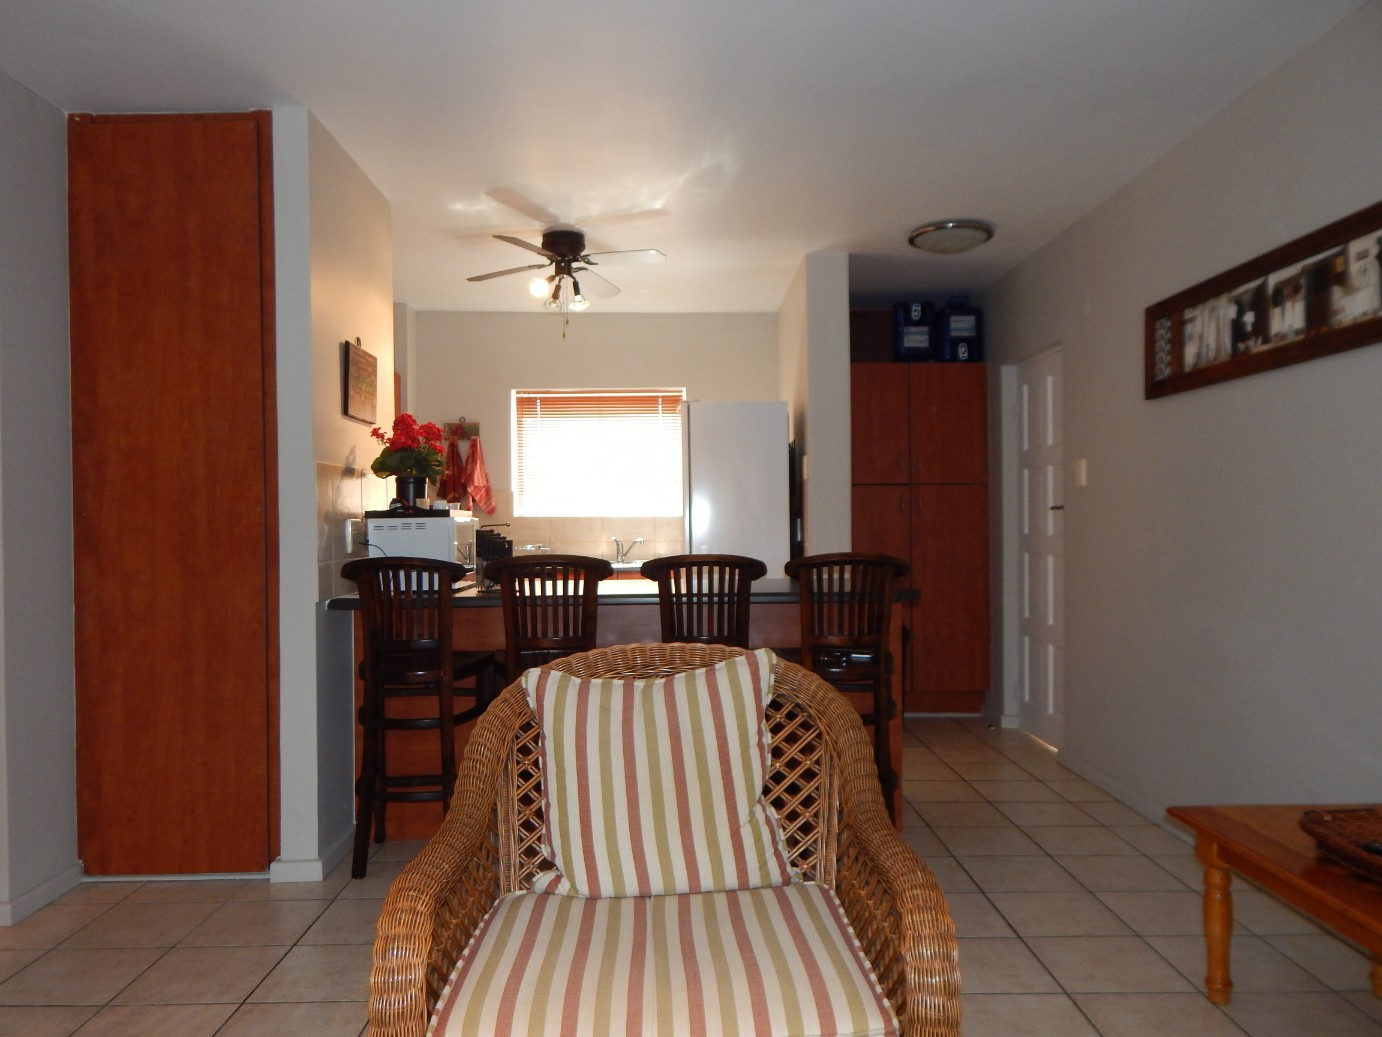 3 Bedroom Apartment for sale in Diaz Beach ENT0080239 : photo#3